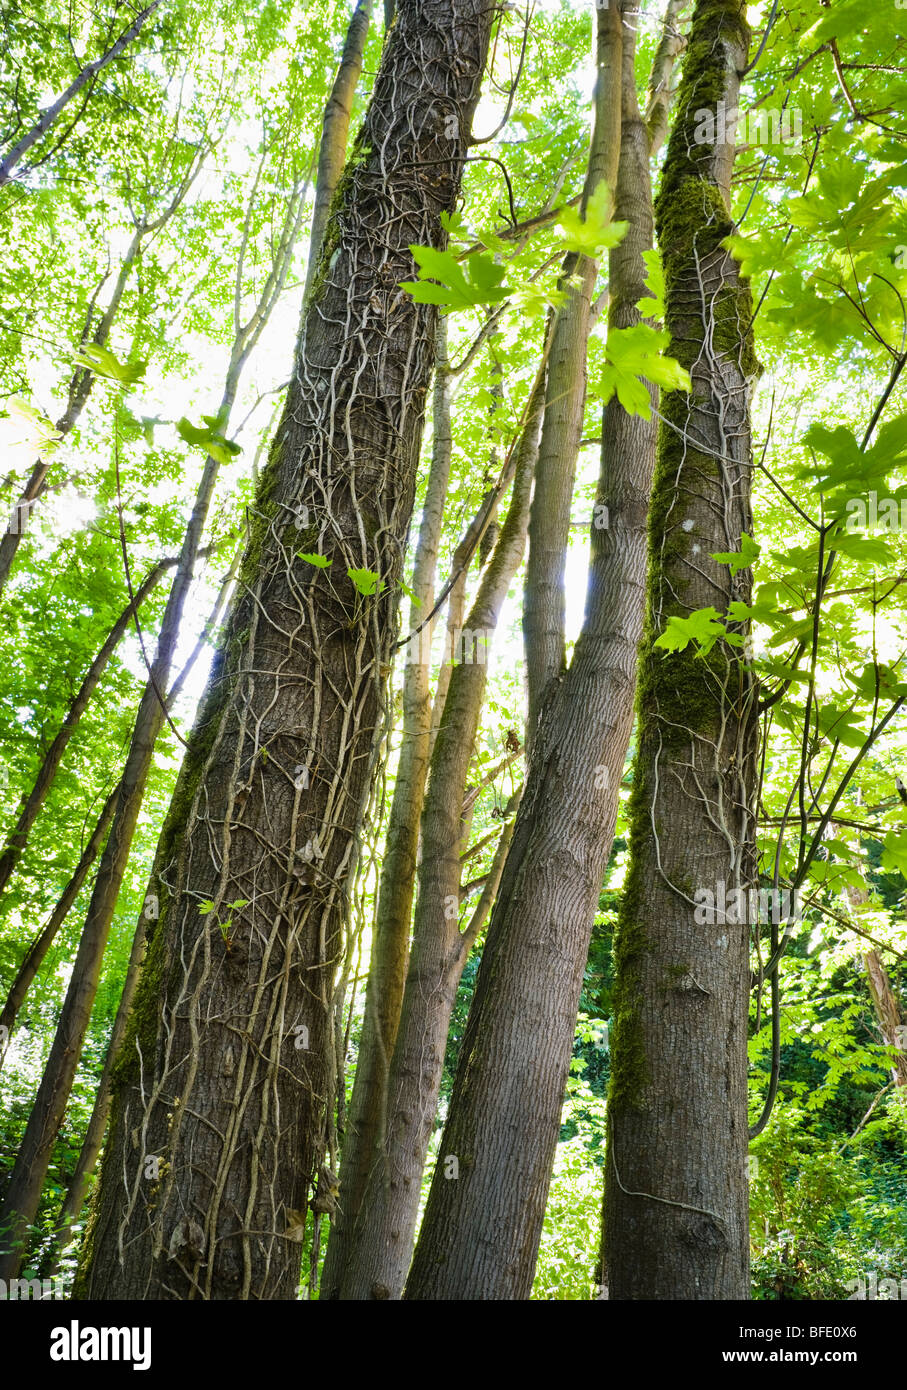 Conservation efforts cut invasive ivy killing it on the trees. West Seattle, Washington, USA. - Stock Image